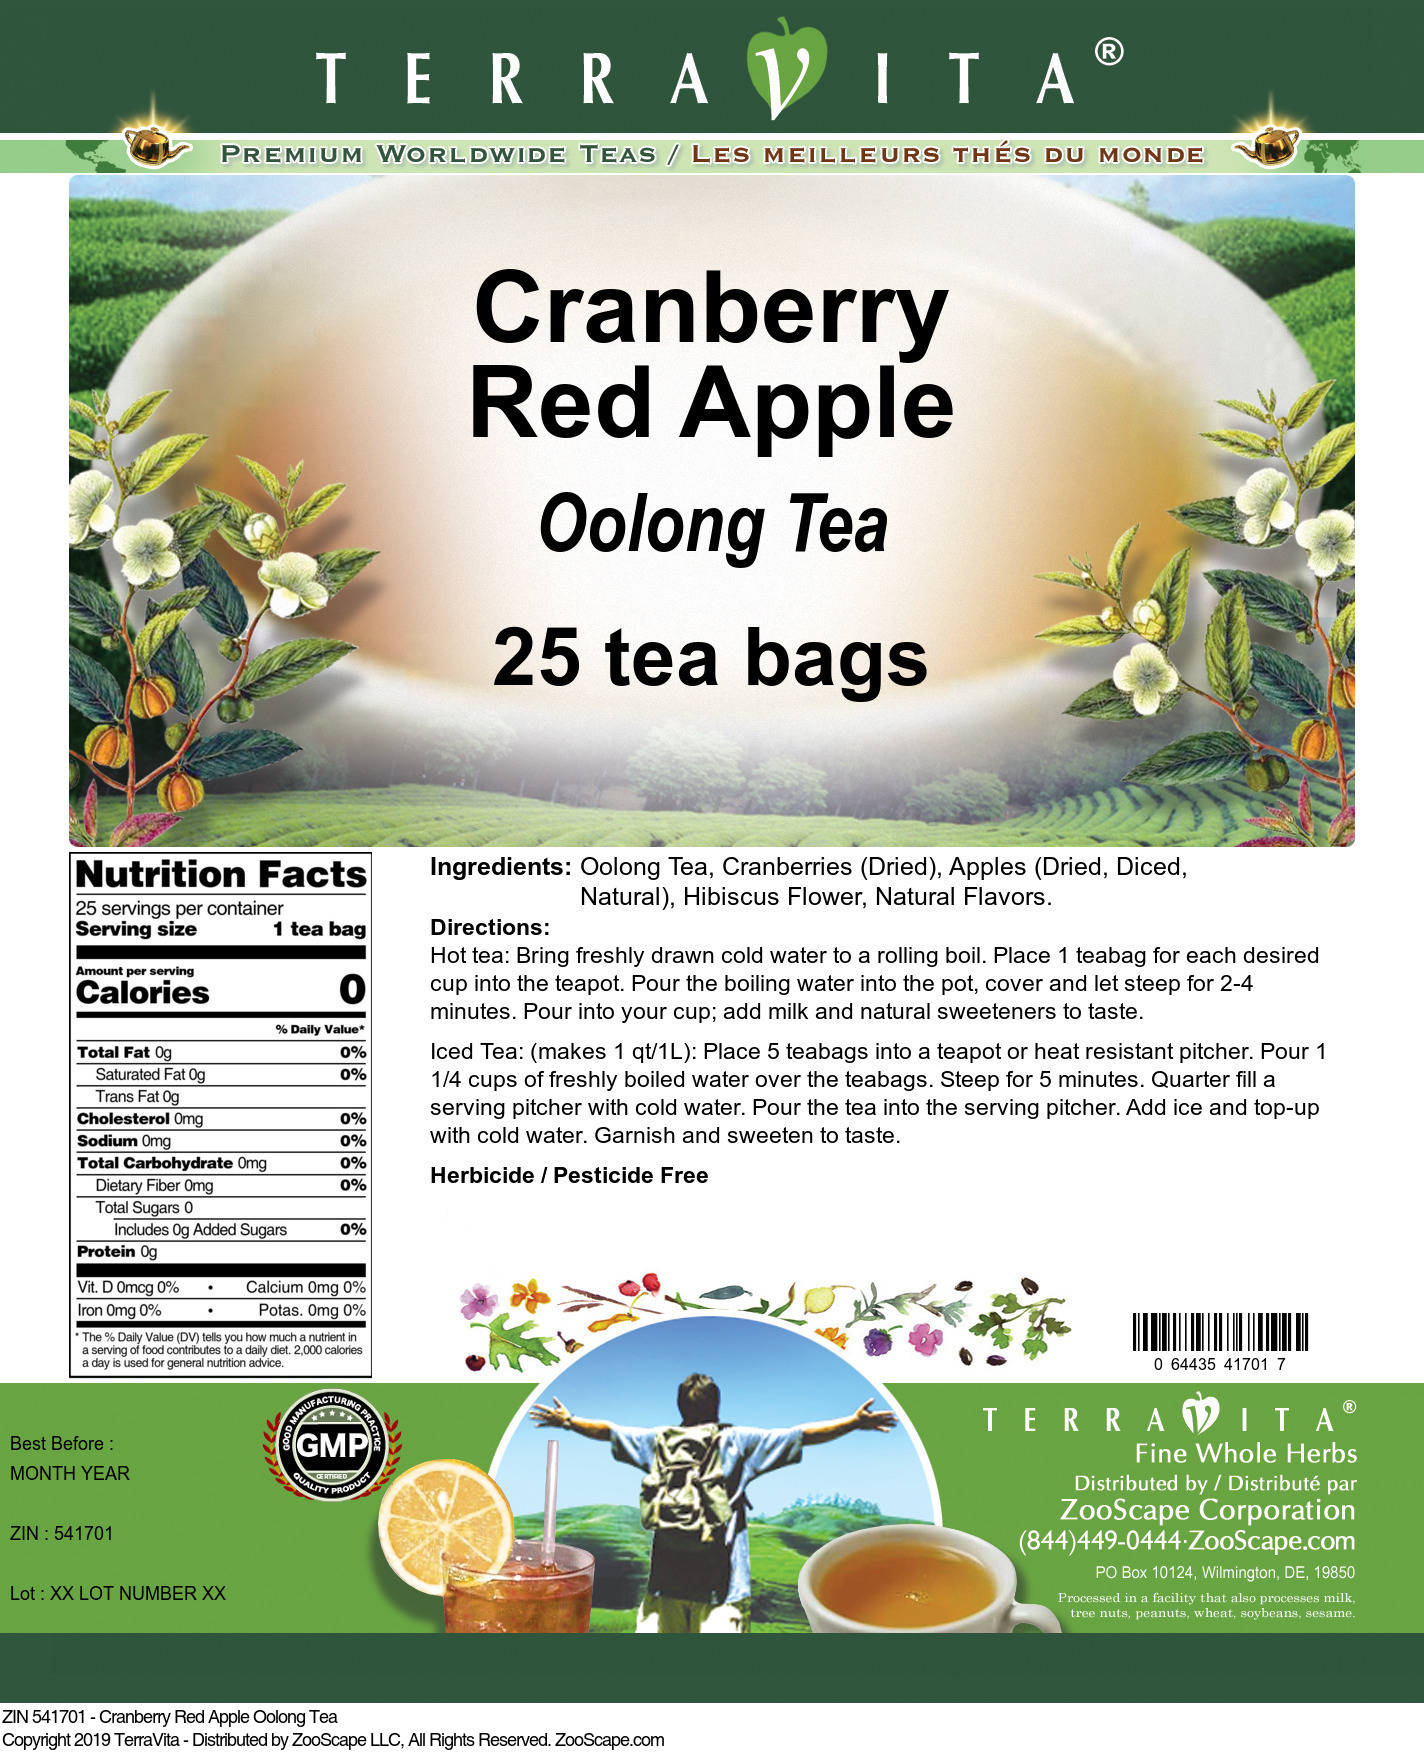 Cranberry Red Apple Oolong Tea